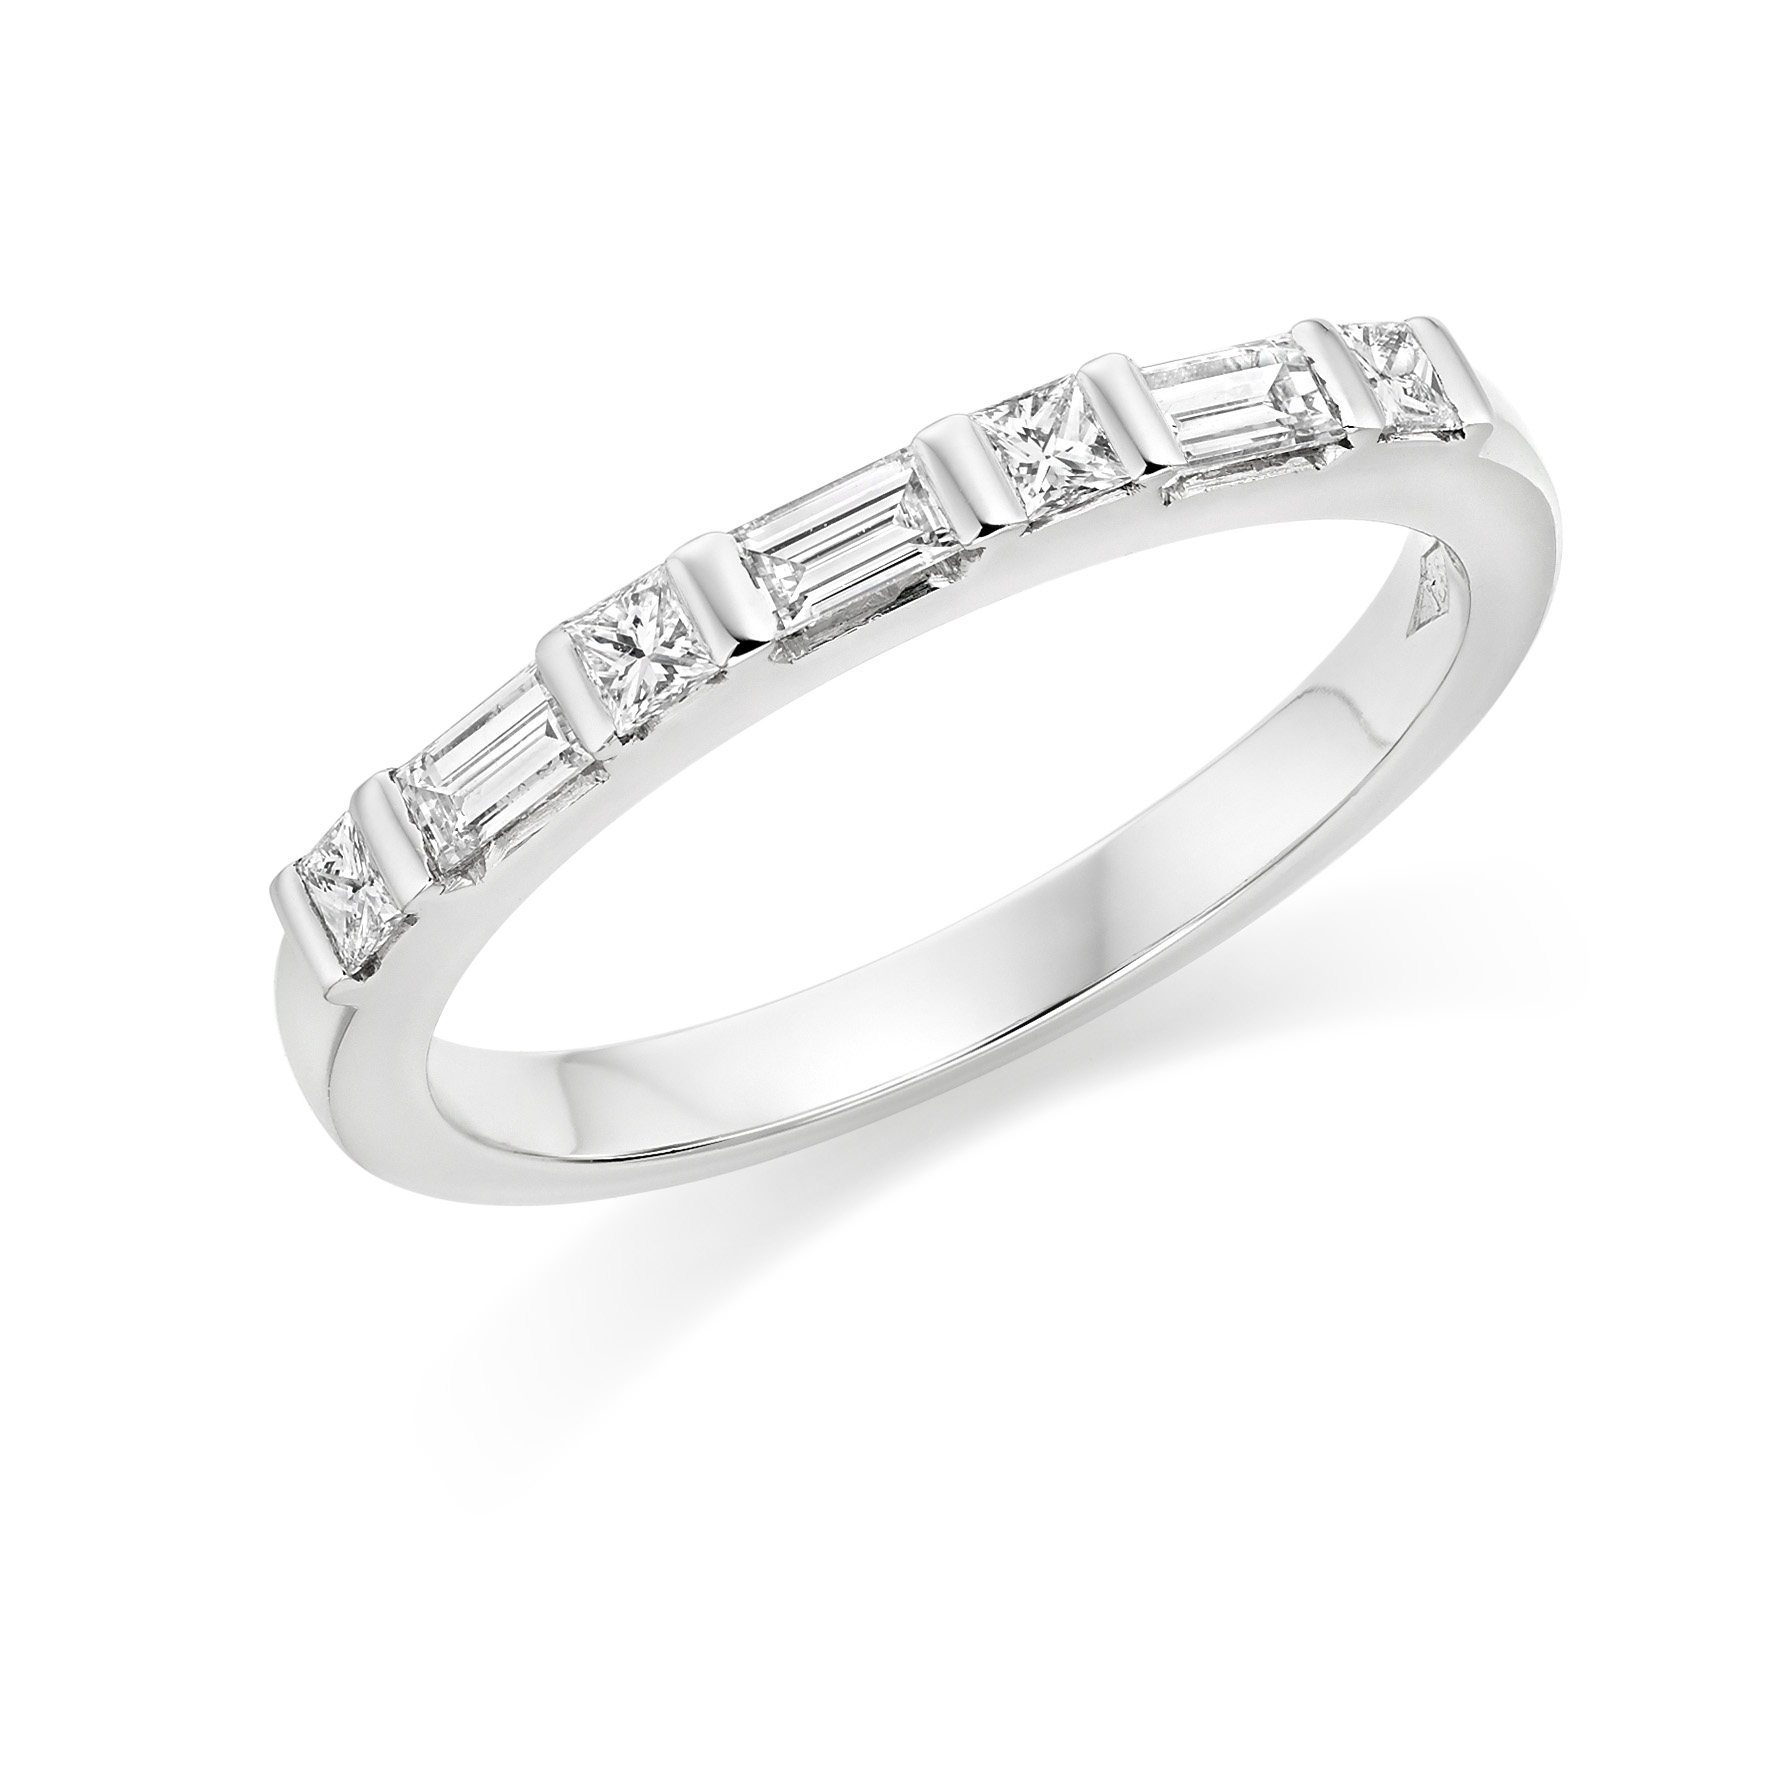 Gavriella Eternity Ring Hatton Garden